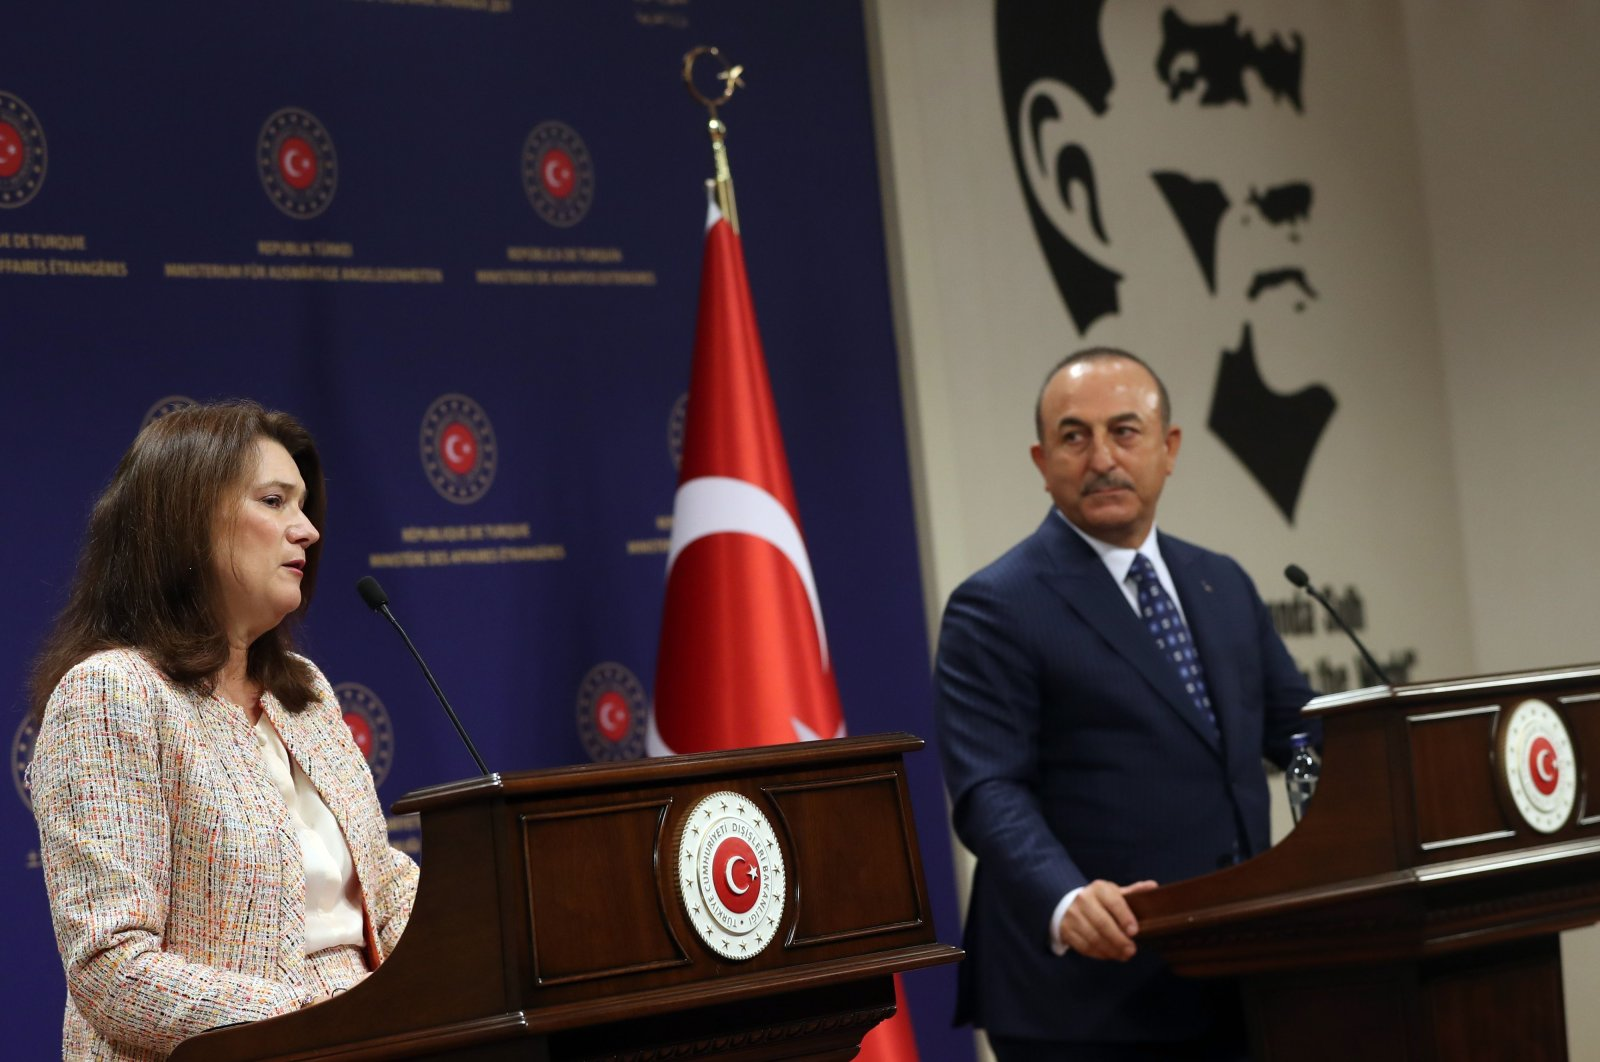 Swedish Foreign Minister Ann Linde (L) and Turkish Foreign Minister Mevlüt Çavuşoğlu hold a joint press conference after their meeting at the Foreign Ministry's headquarters in Ankara, Turkey, Oct. 13, 2020. (AFP)